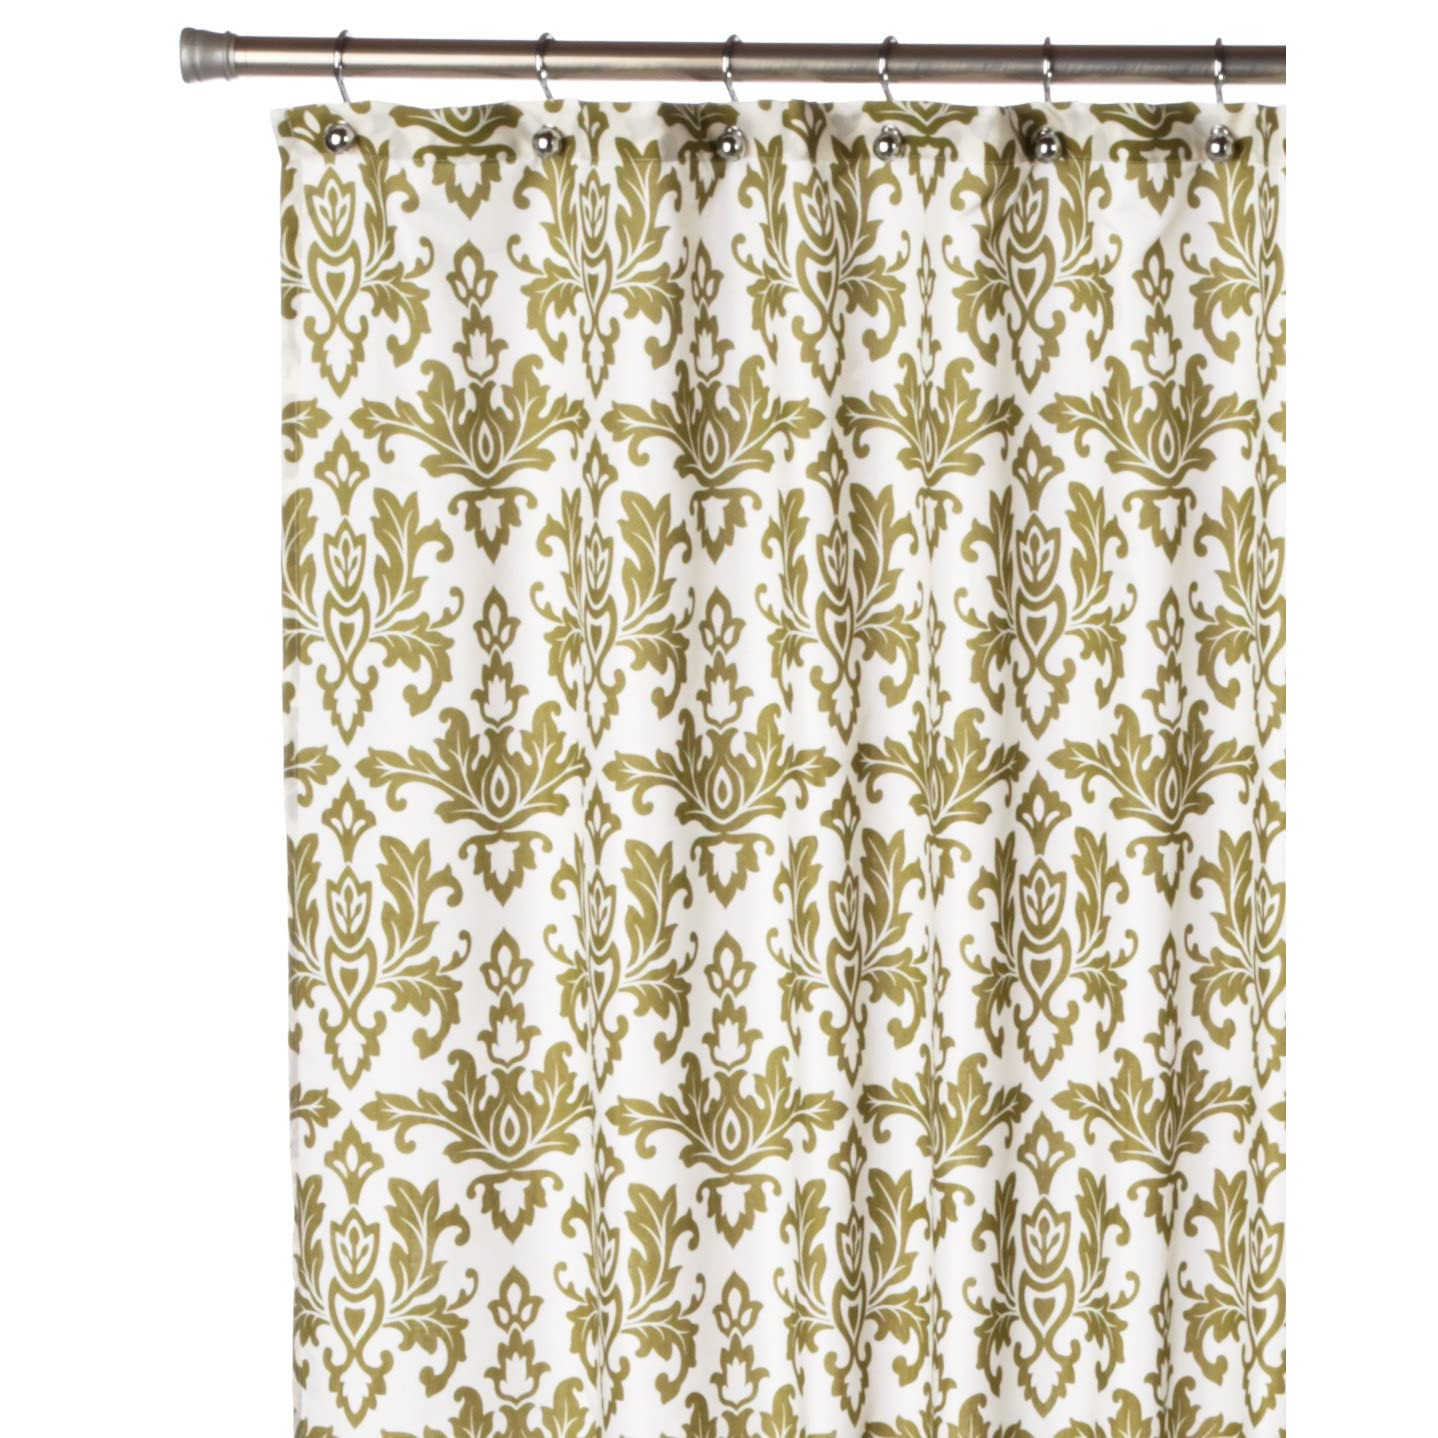 Sage / Matt Gold Damask Shower Curtain